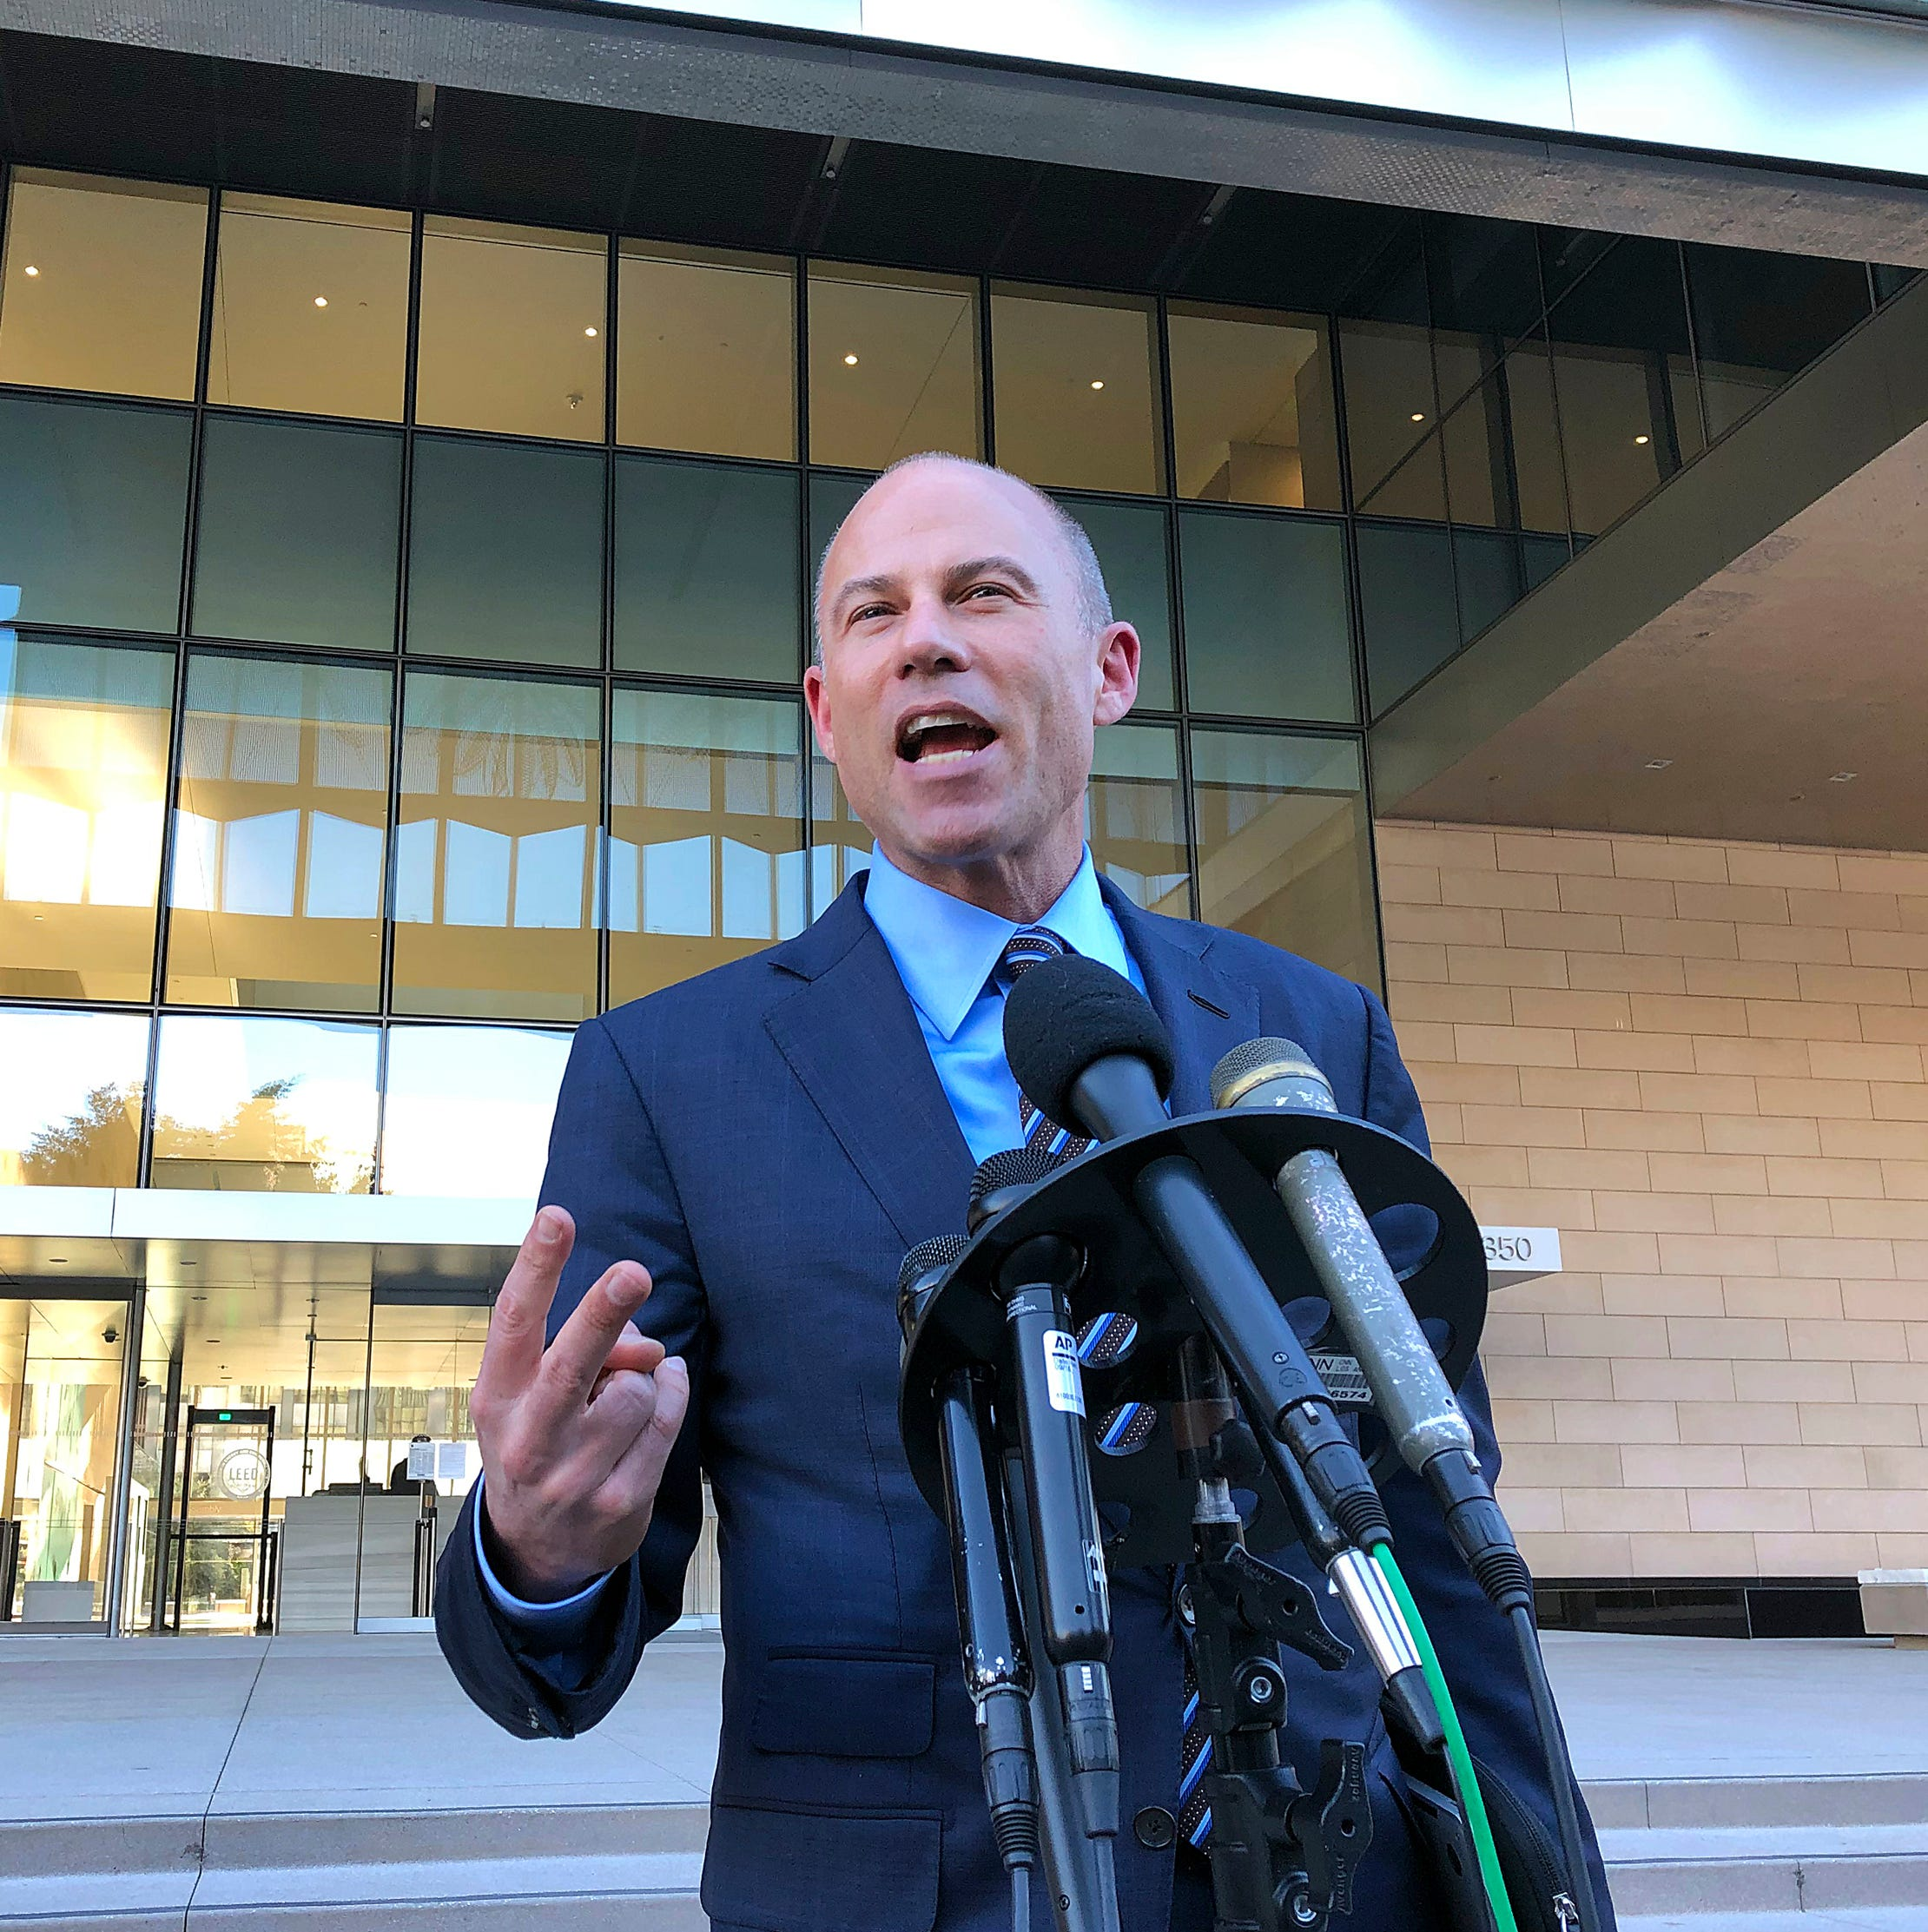 Feds: Michael Avenatti said he had evidence Nike employees paid AAU players